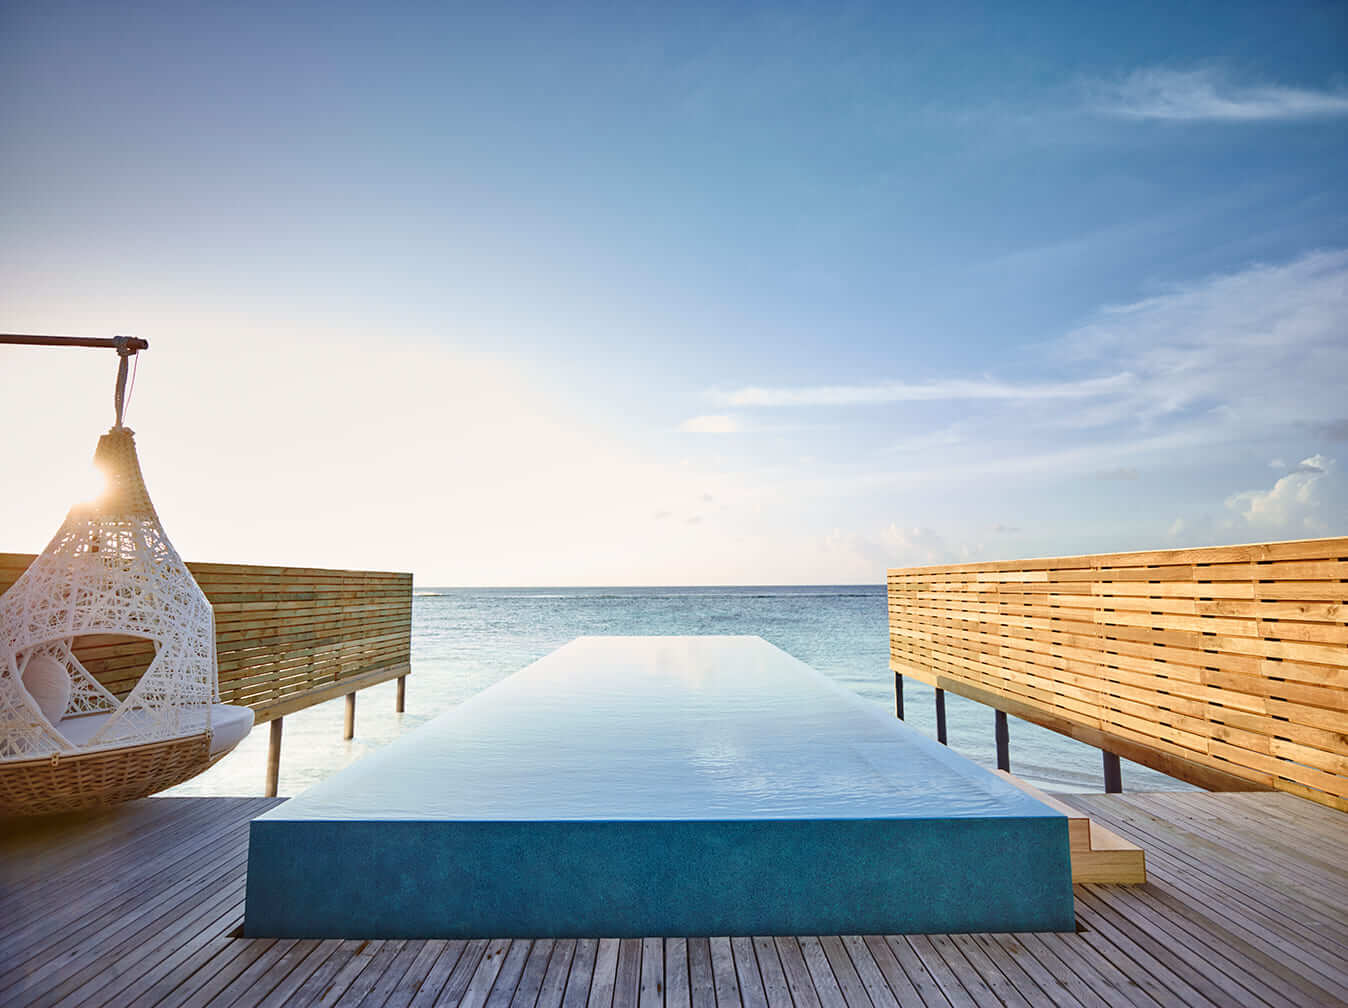 private infinity pool in overwater villa at LUX* South Ari Atoll, Maldives